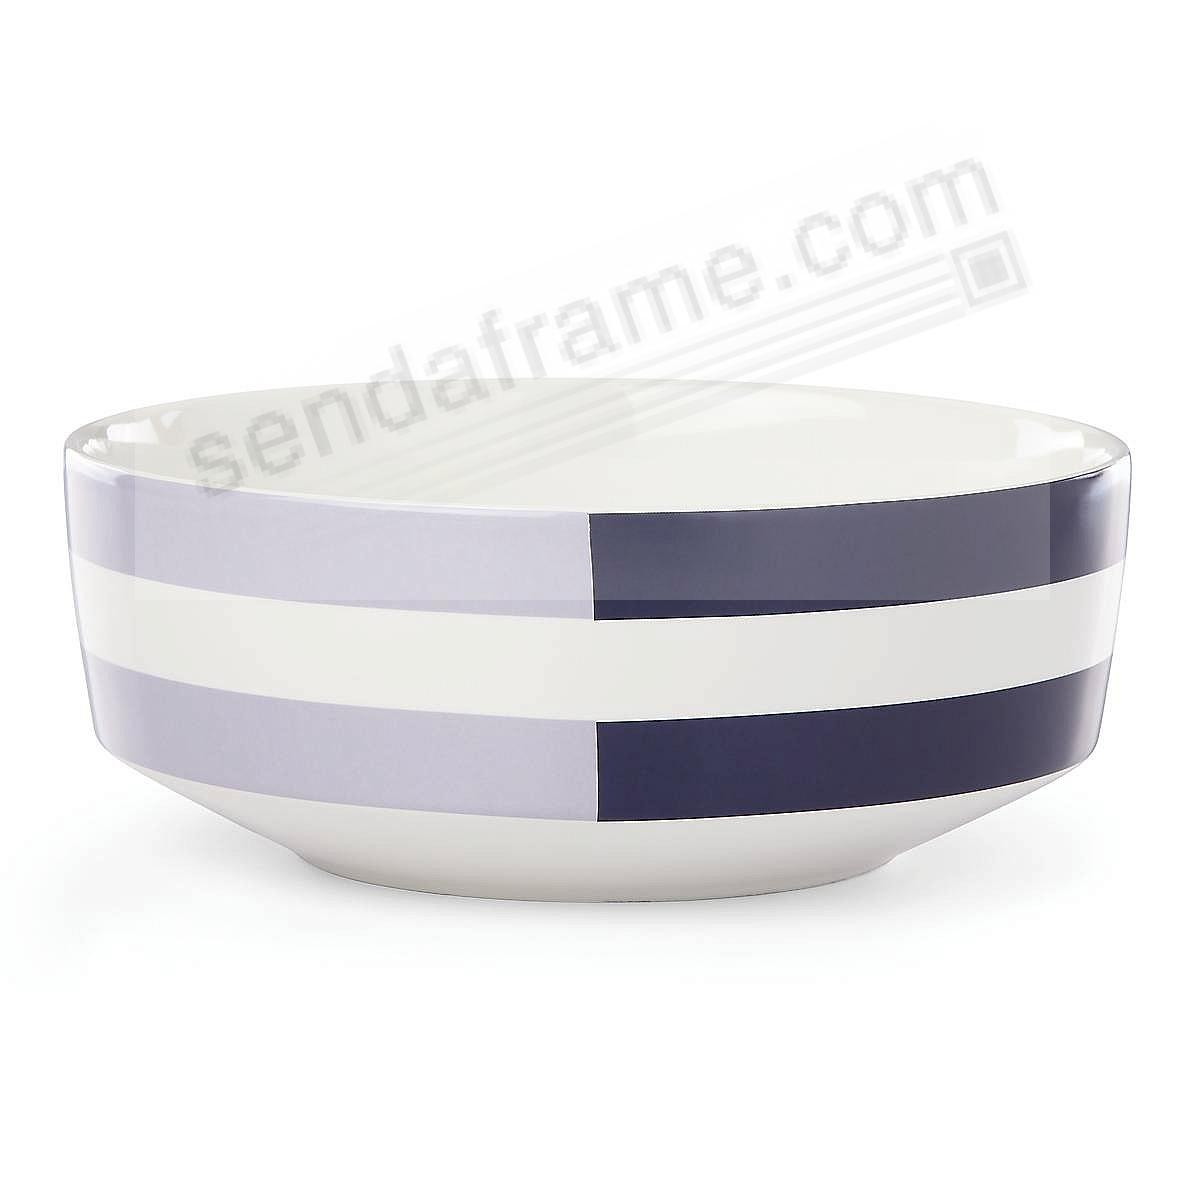 The NOLITA BLUE 8-in SERVING BOWL by kate spade new york®